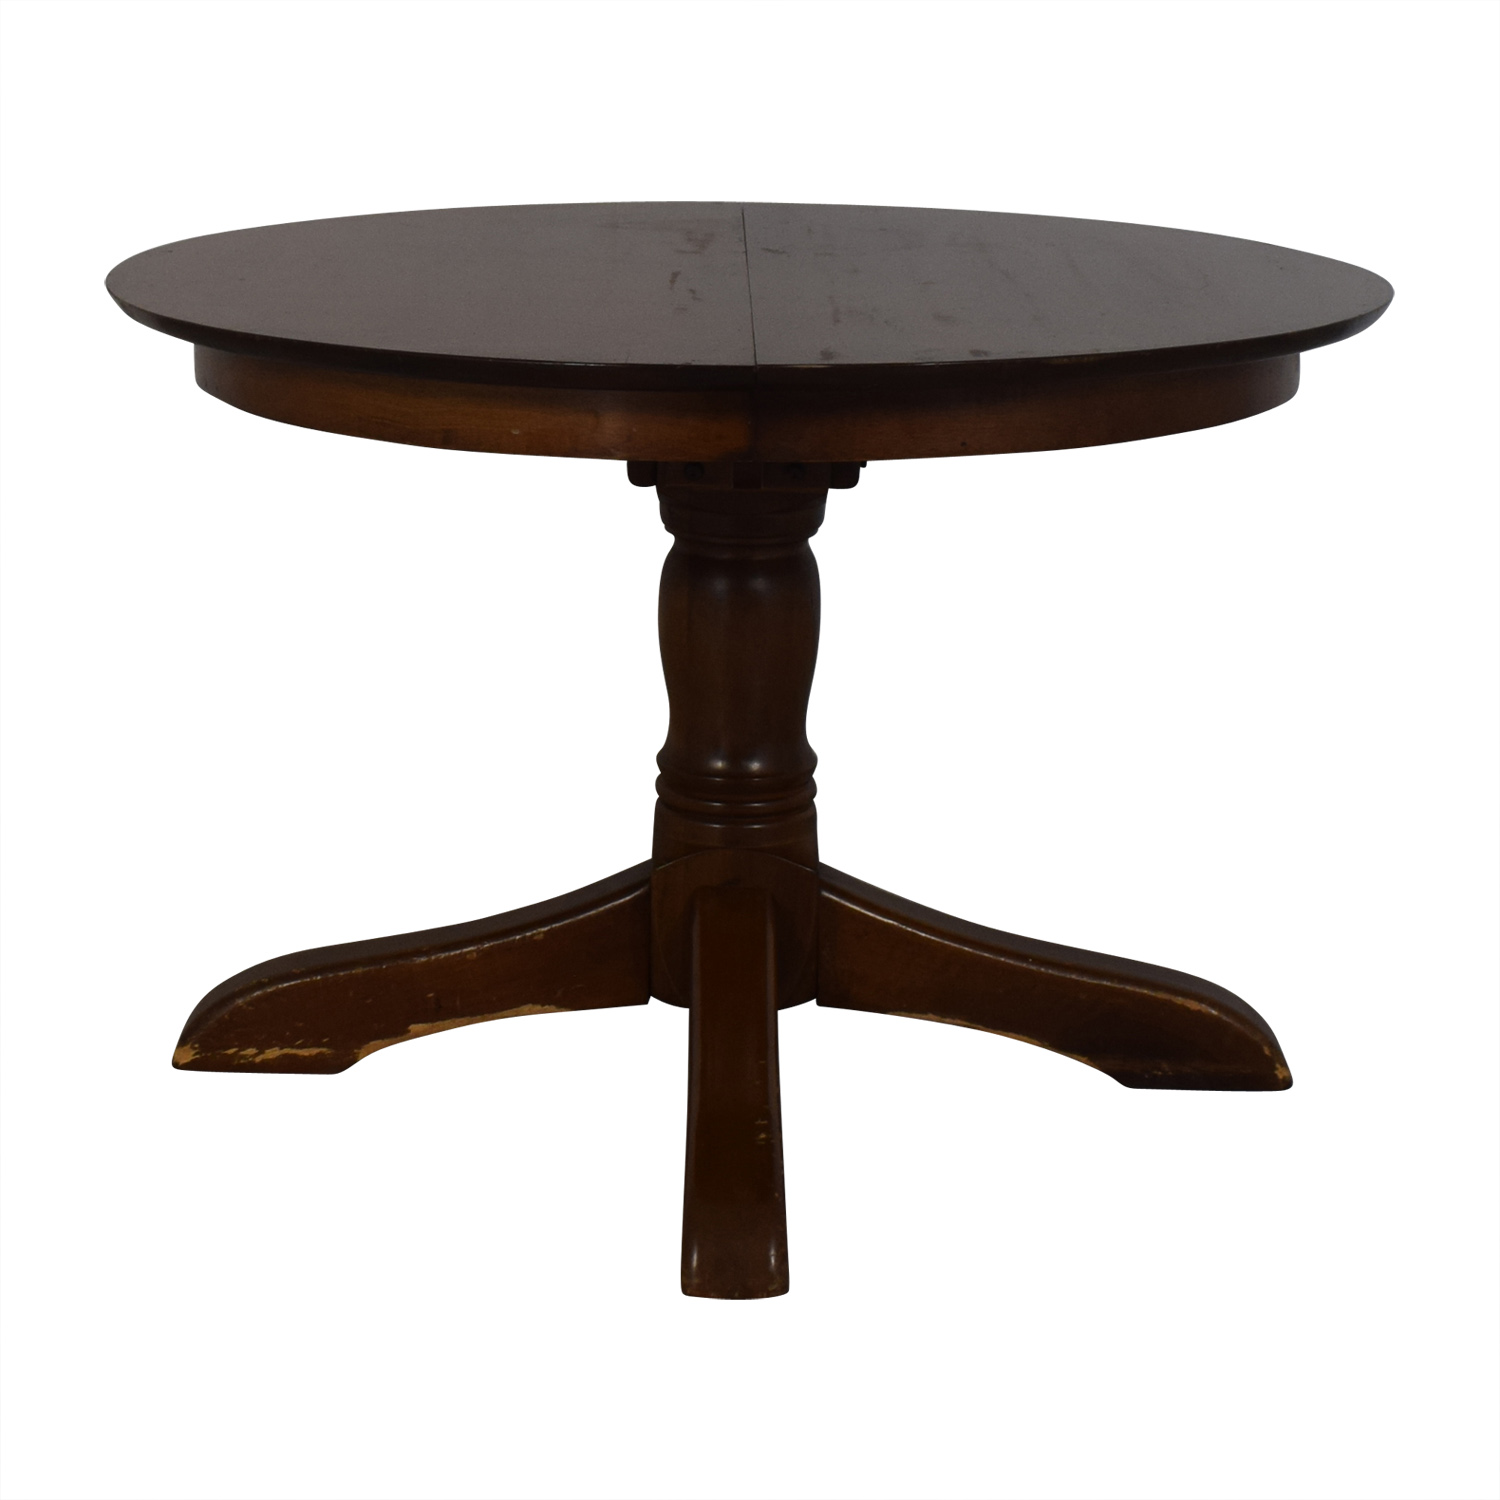 Pottery Barn Extendable Round Dining Table / Dinner Tables